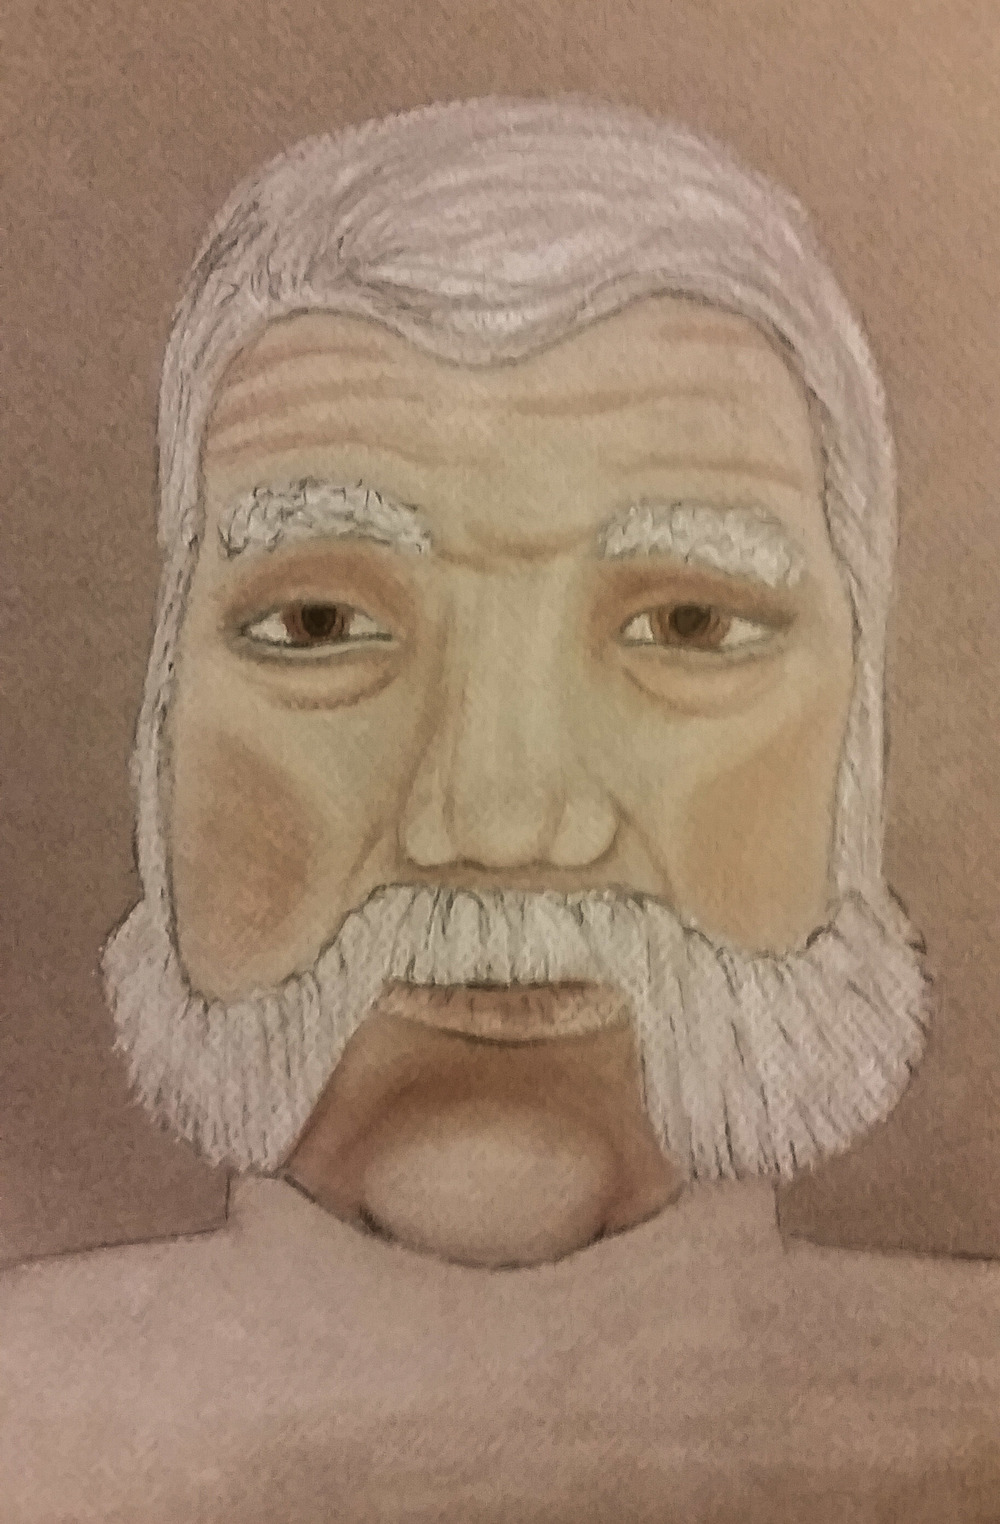 Petkoff- Facial hair design